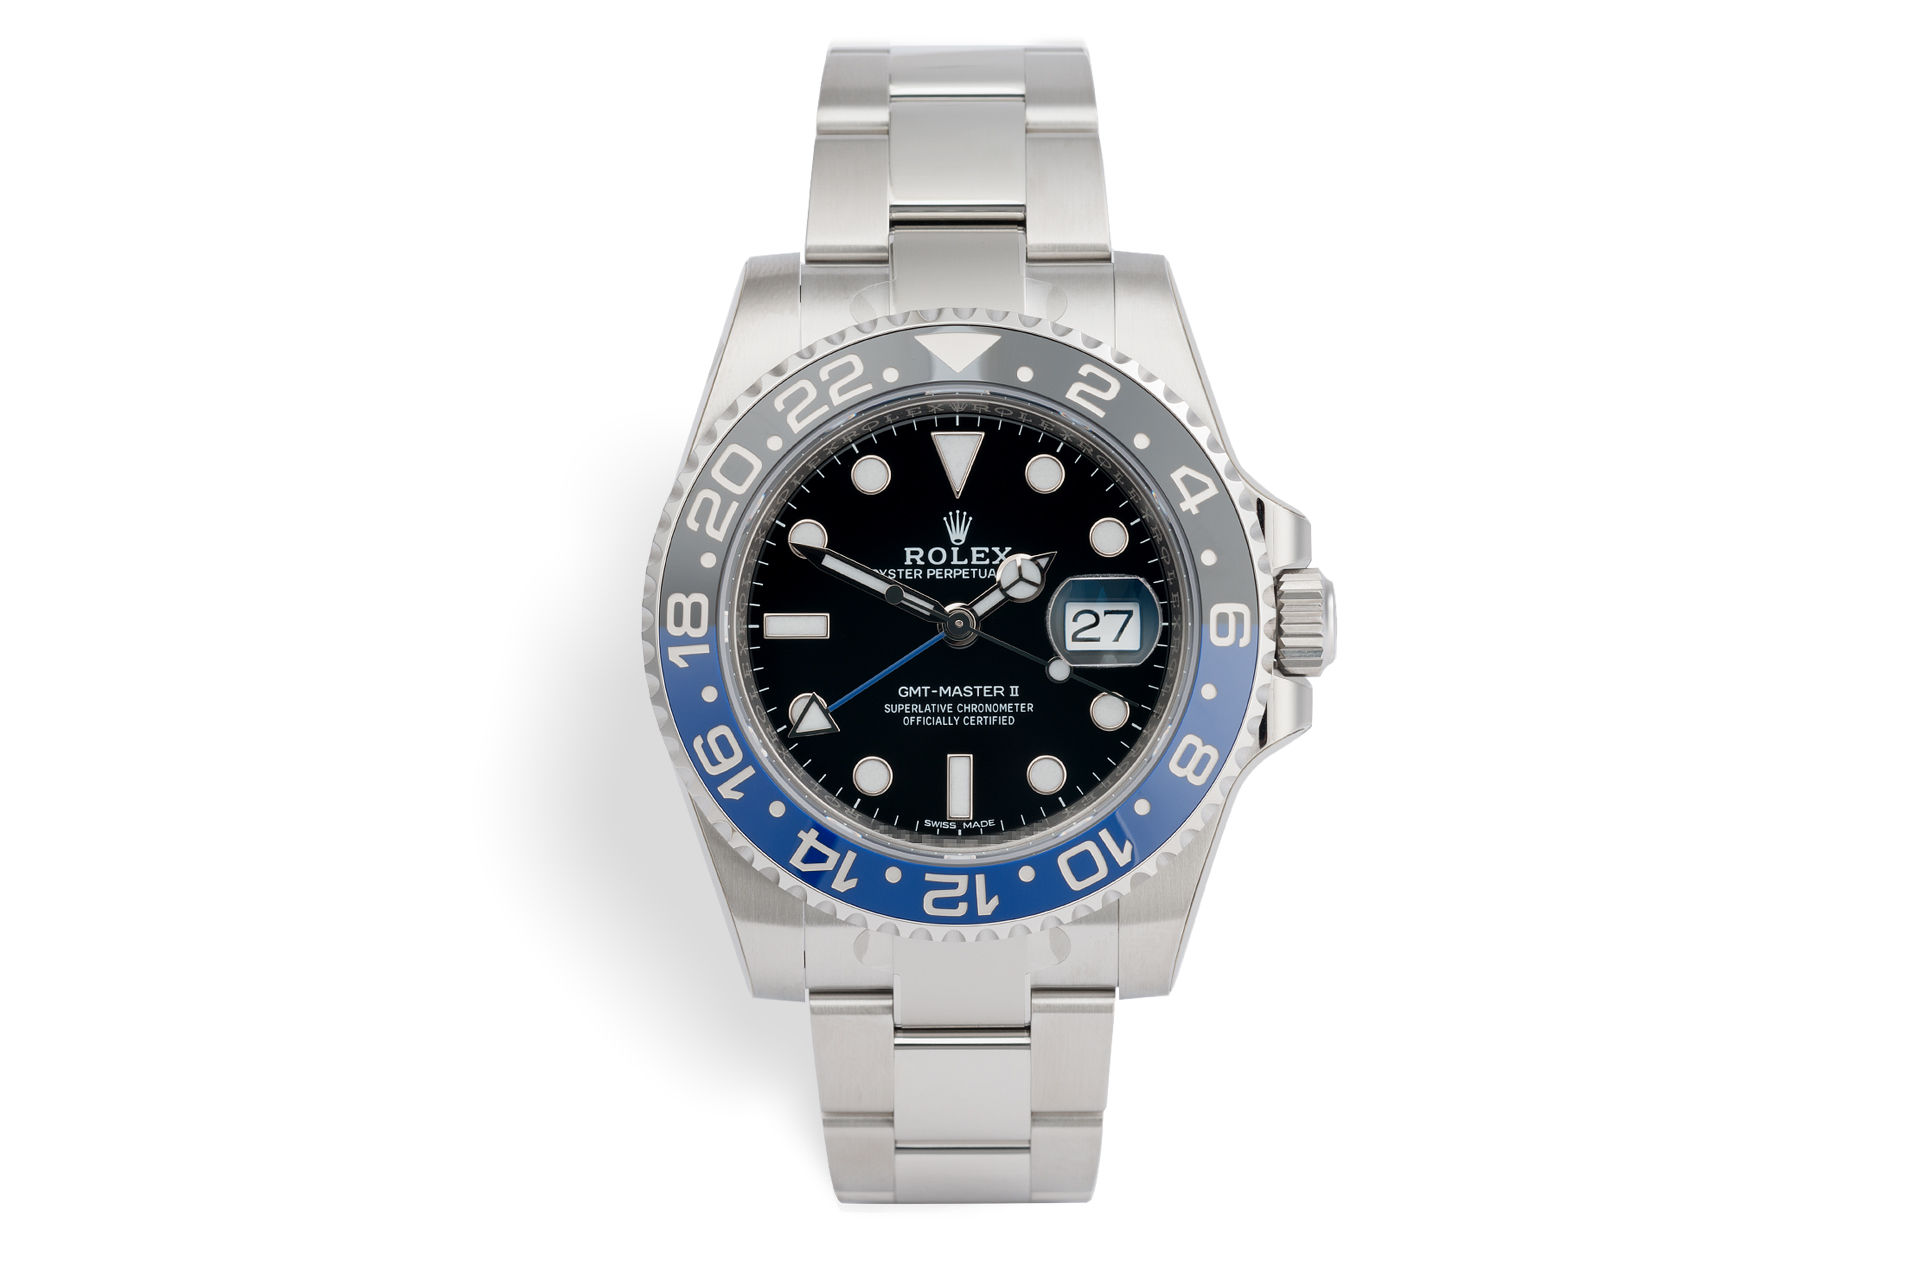 ref 116710BLNR | 'Batman' 5 Year Warranty | Rolex GMT-Master II